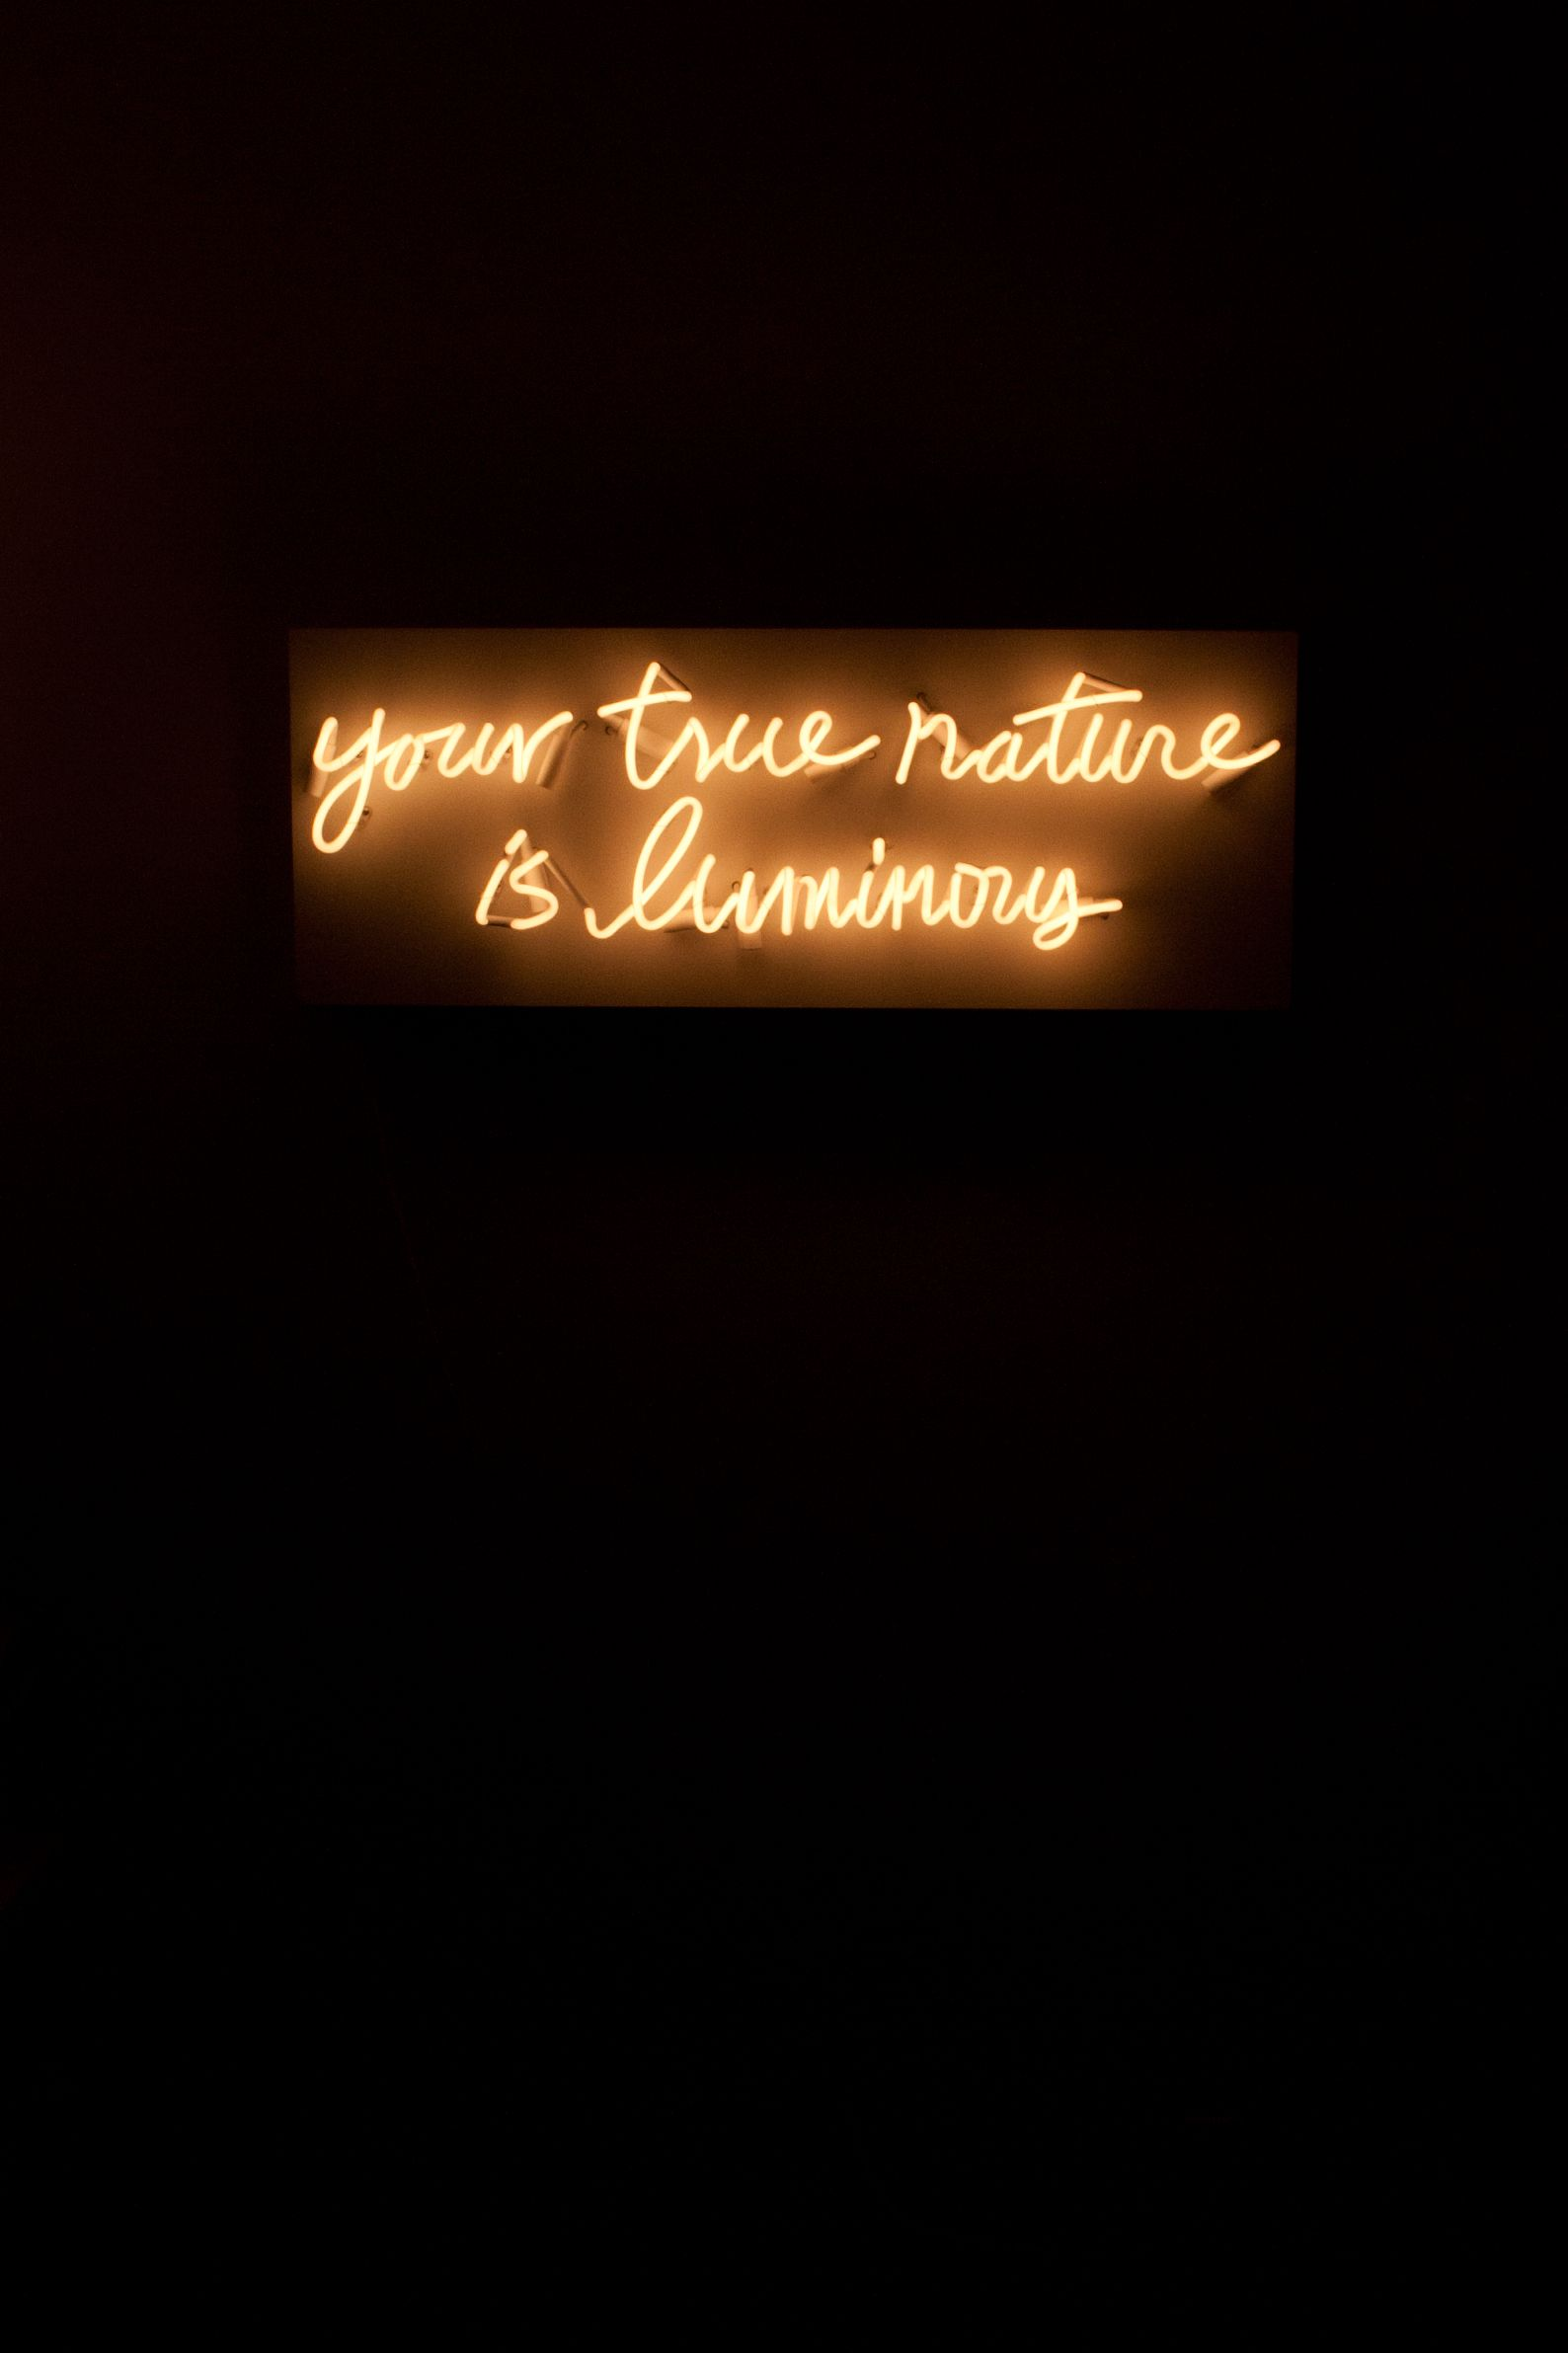 Light Quotes Extraordinary Neon #truthbomb  Pinterest  True Nature Neon And Neon Lighting